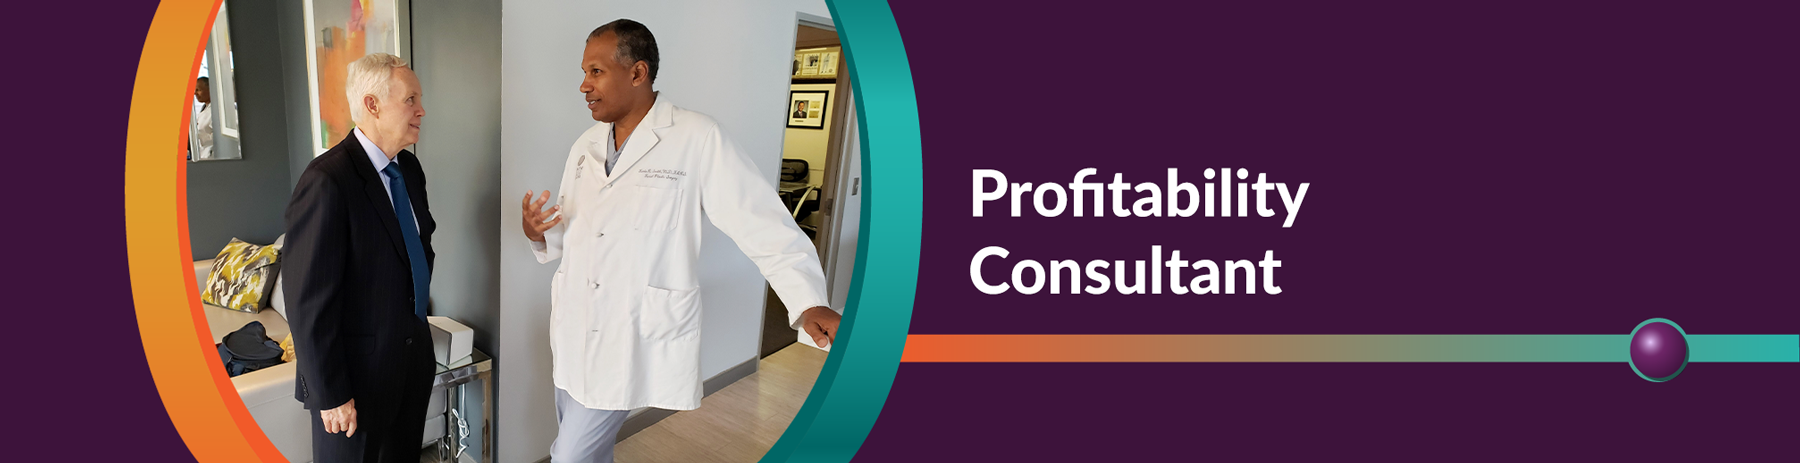 profitability consulting with Business Whisperer